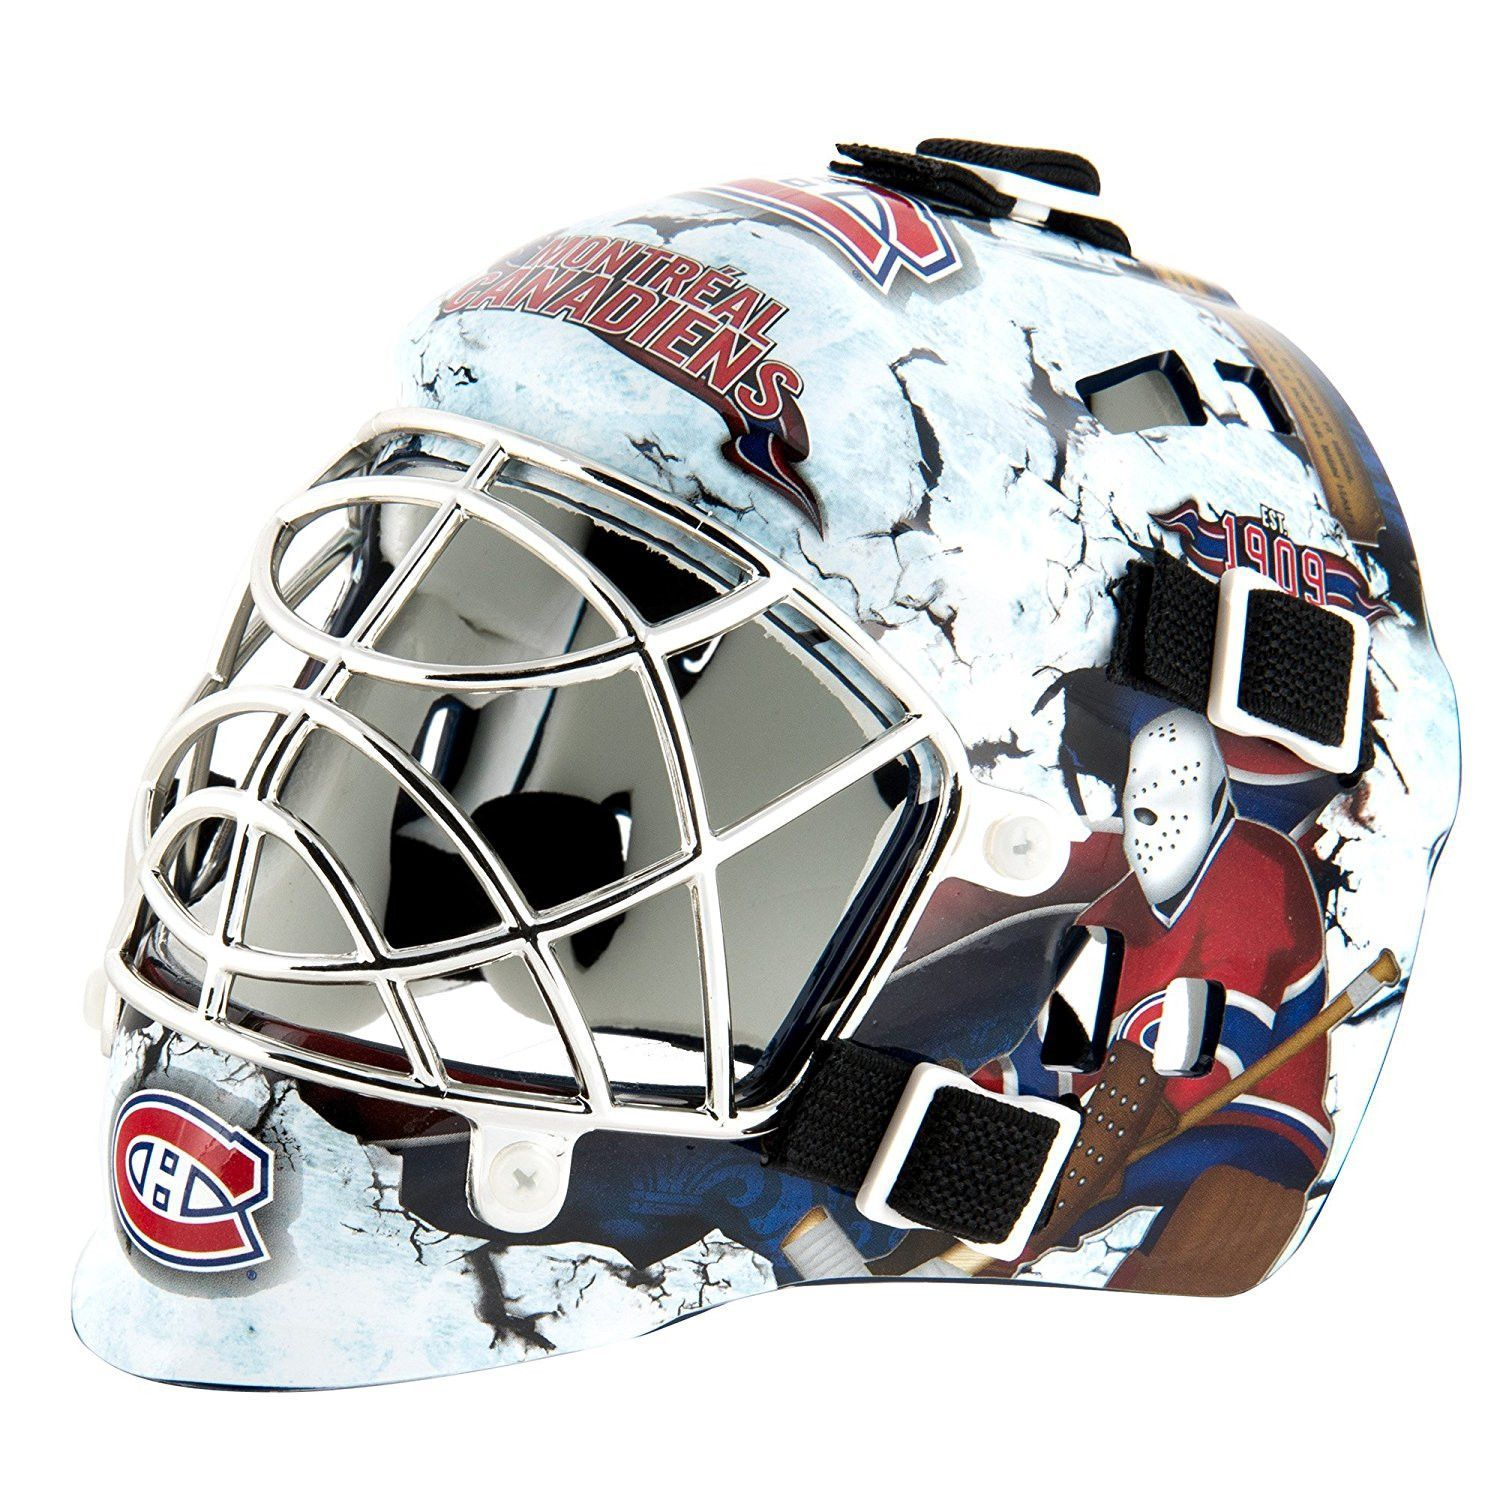 separation shoes 692c5 65d2a FRANKLIN Sports NHL Montreal Canadiens Mini Goalie Mask Carey Price FREE  SHIPPING